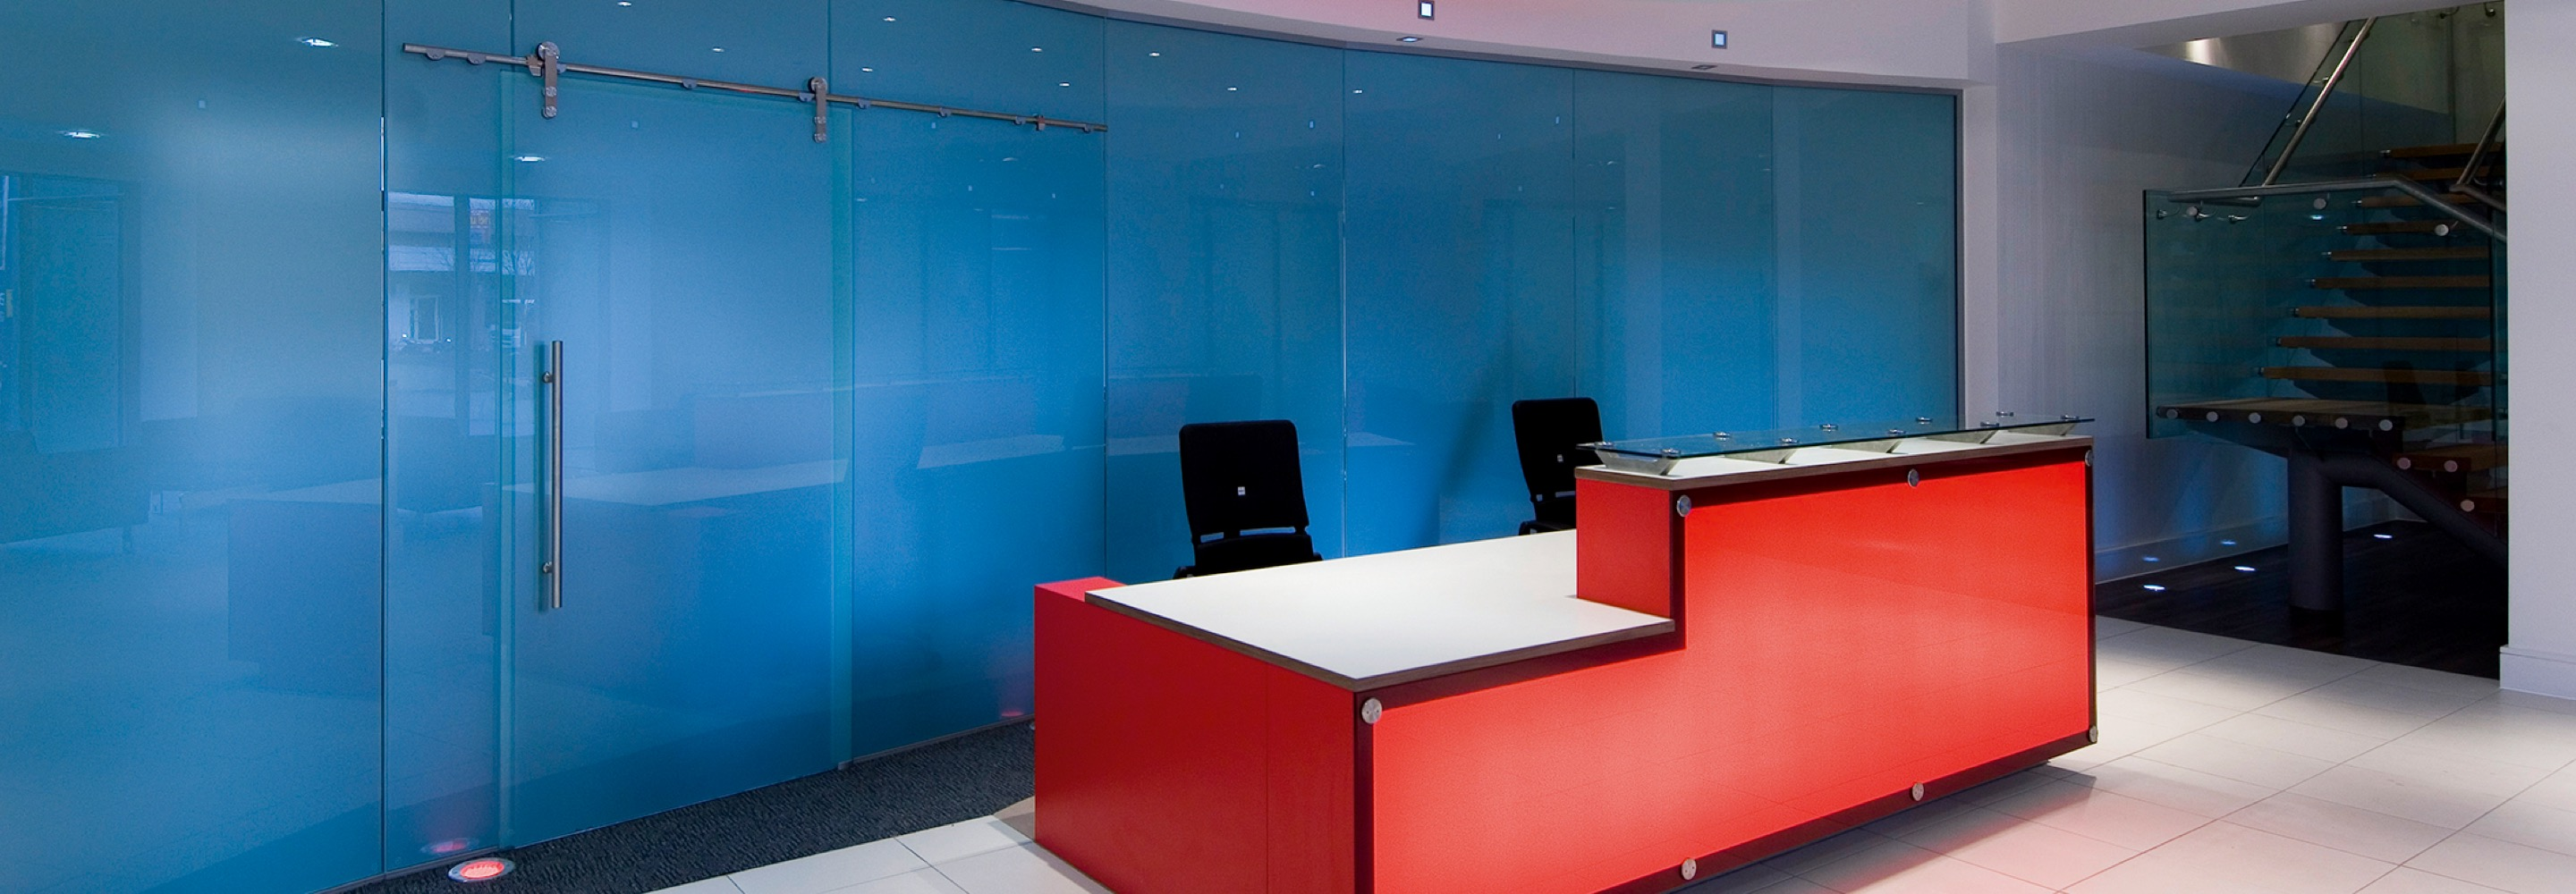 Corporate Interiors Design and Build - modern office reception with coloured glass design